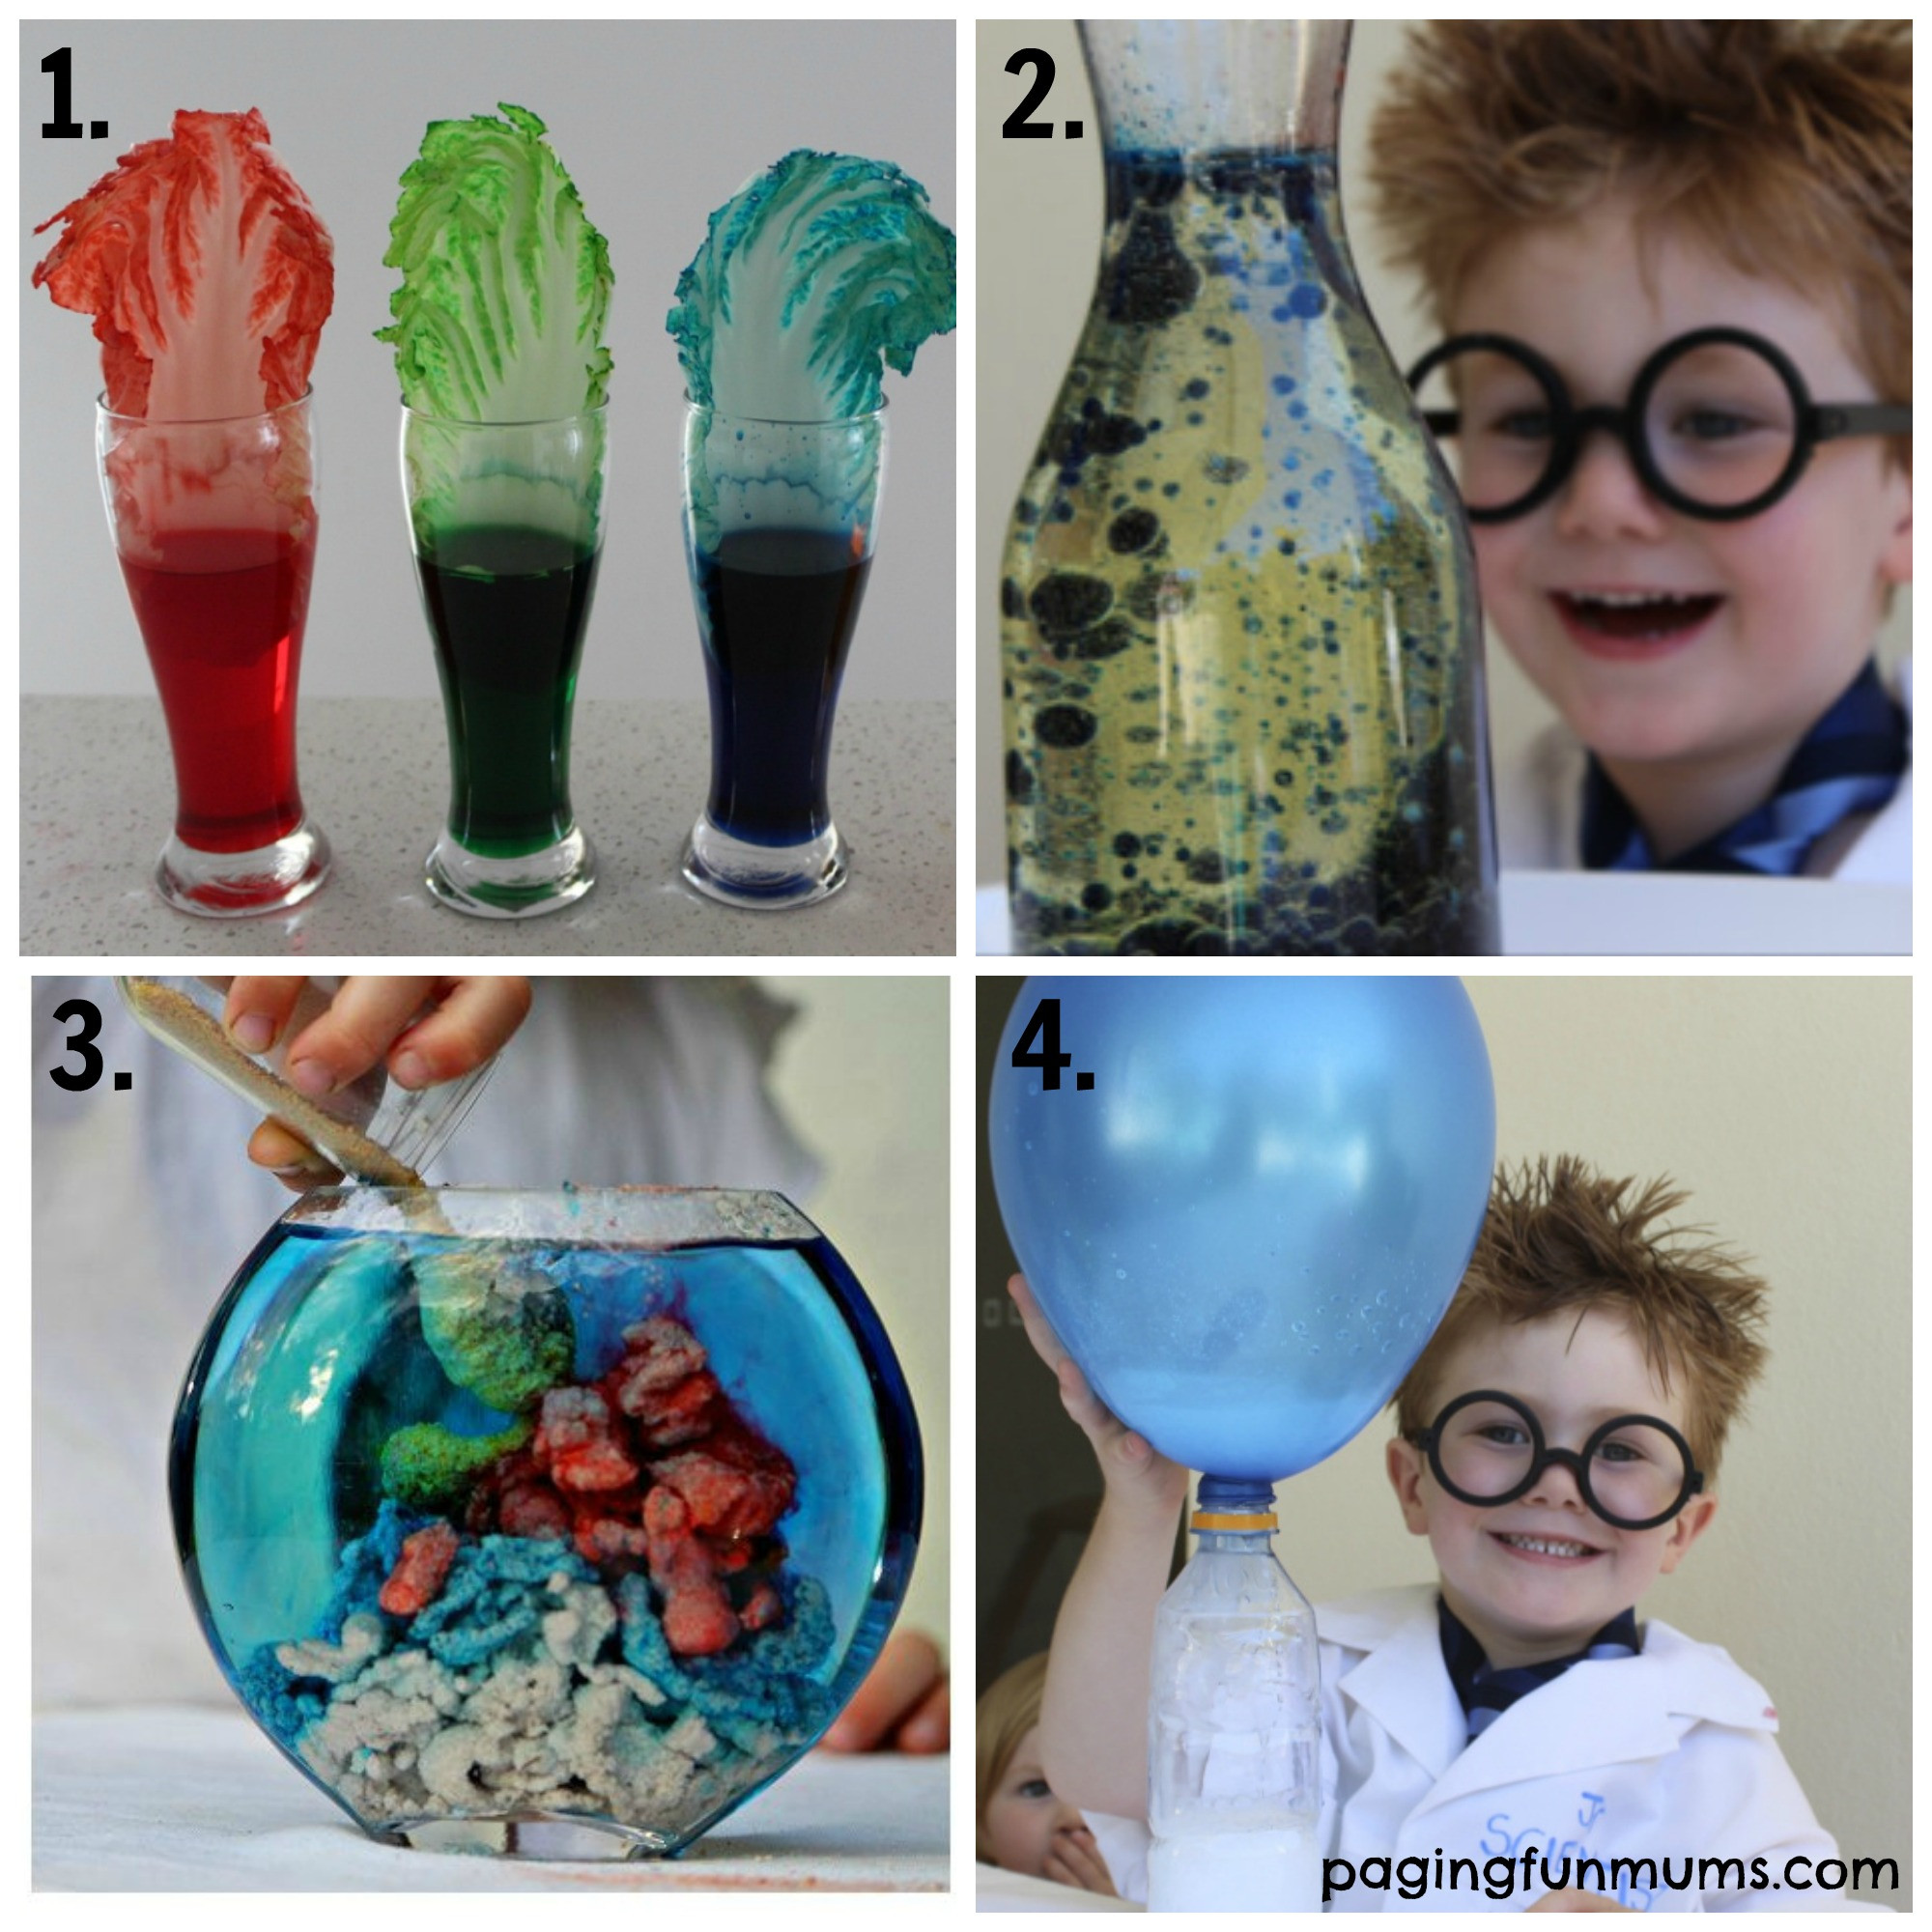 Projects For Kids At Home  21 Fun Science Experiments for Kids 1 4 Paging Fun Mums